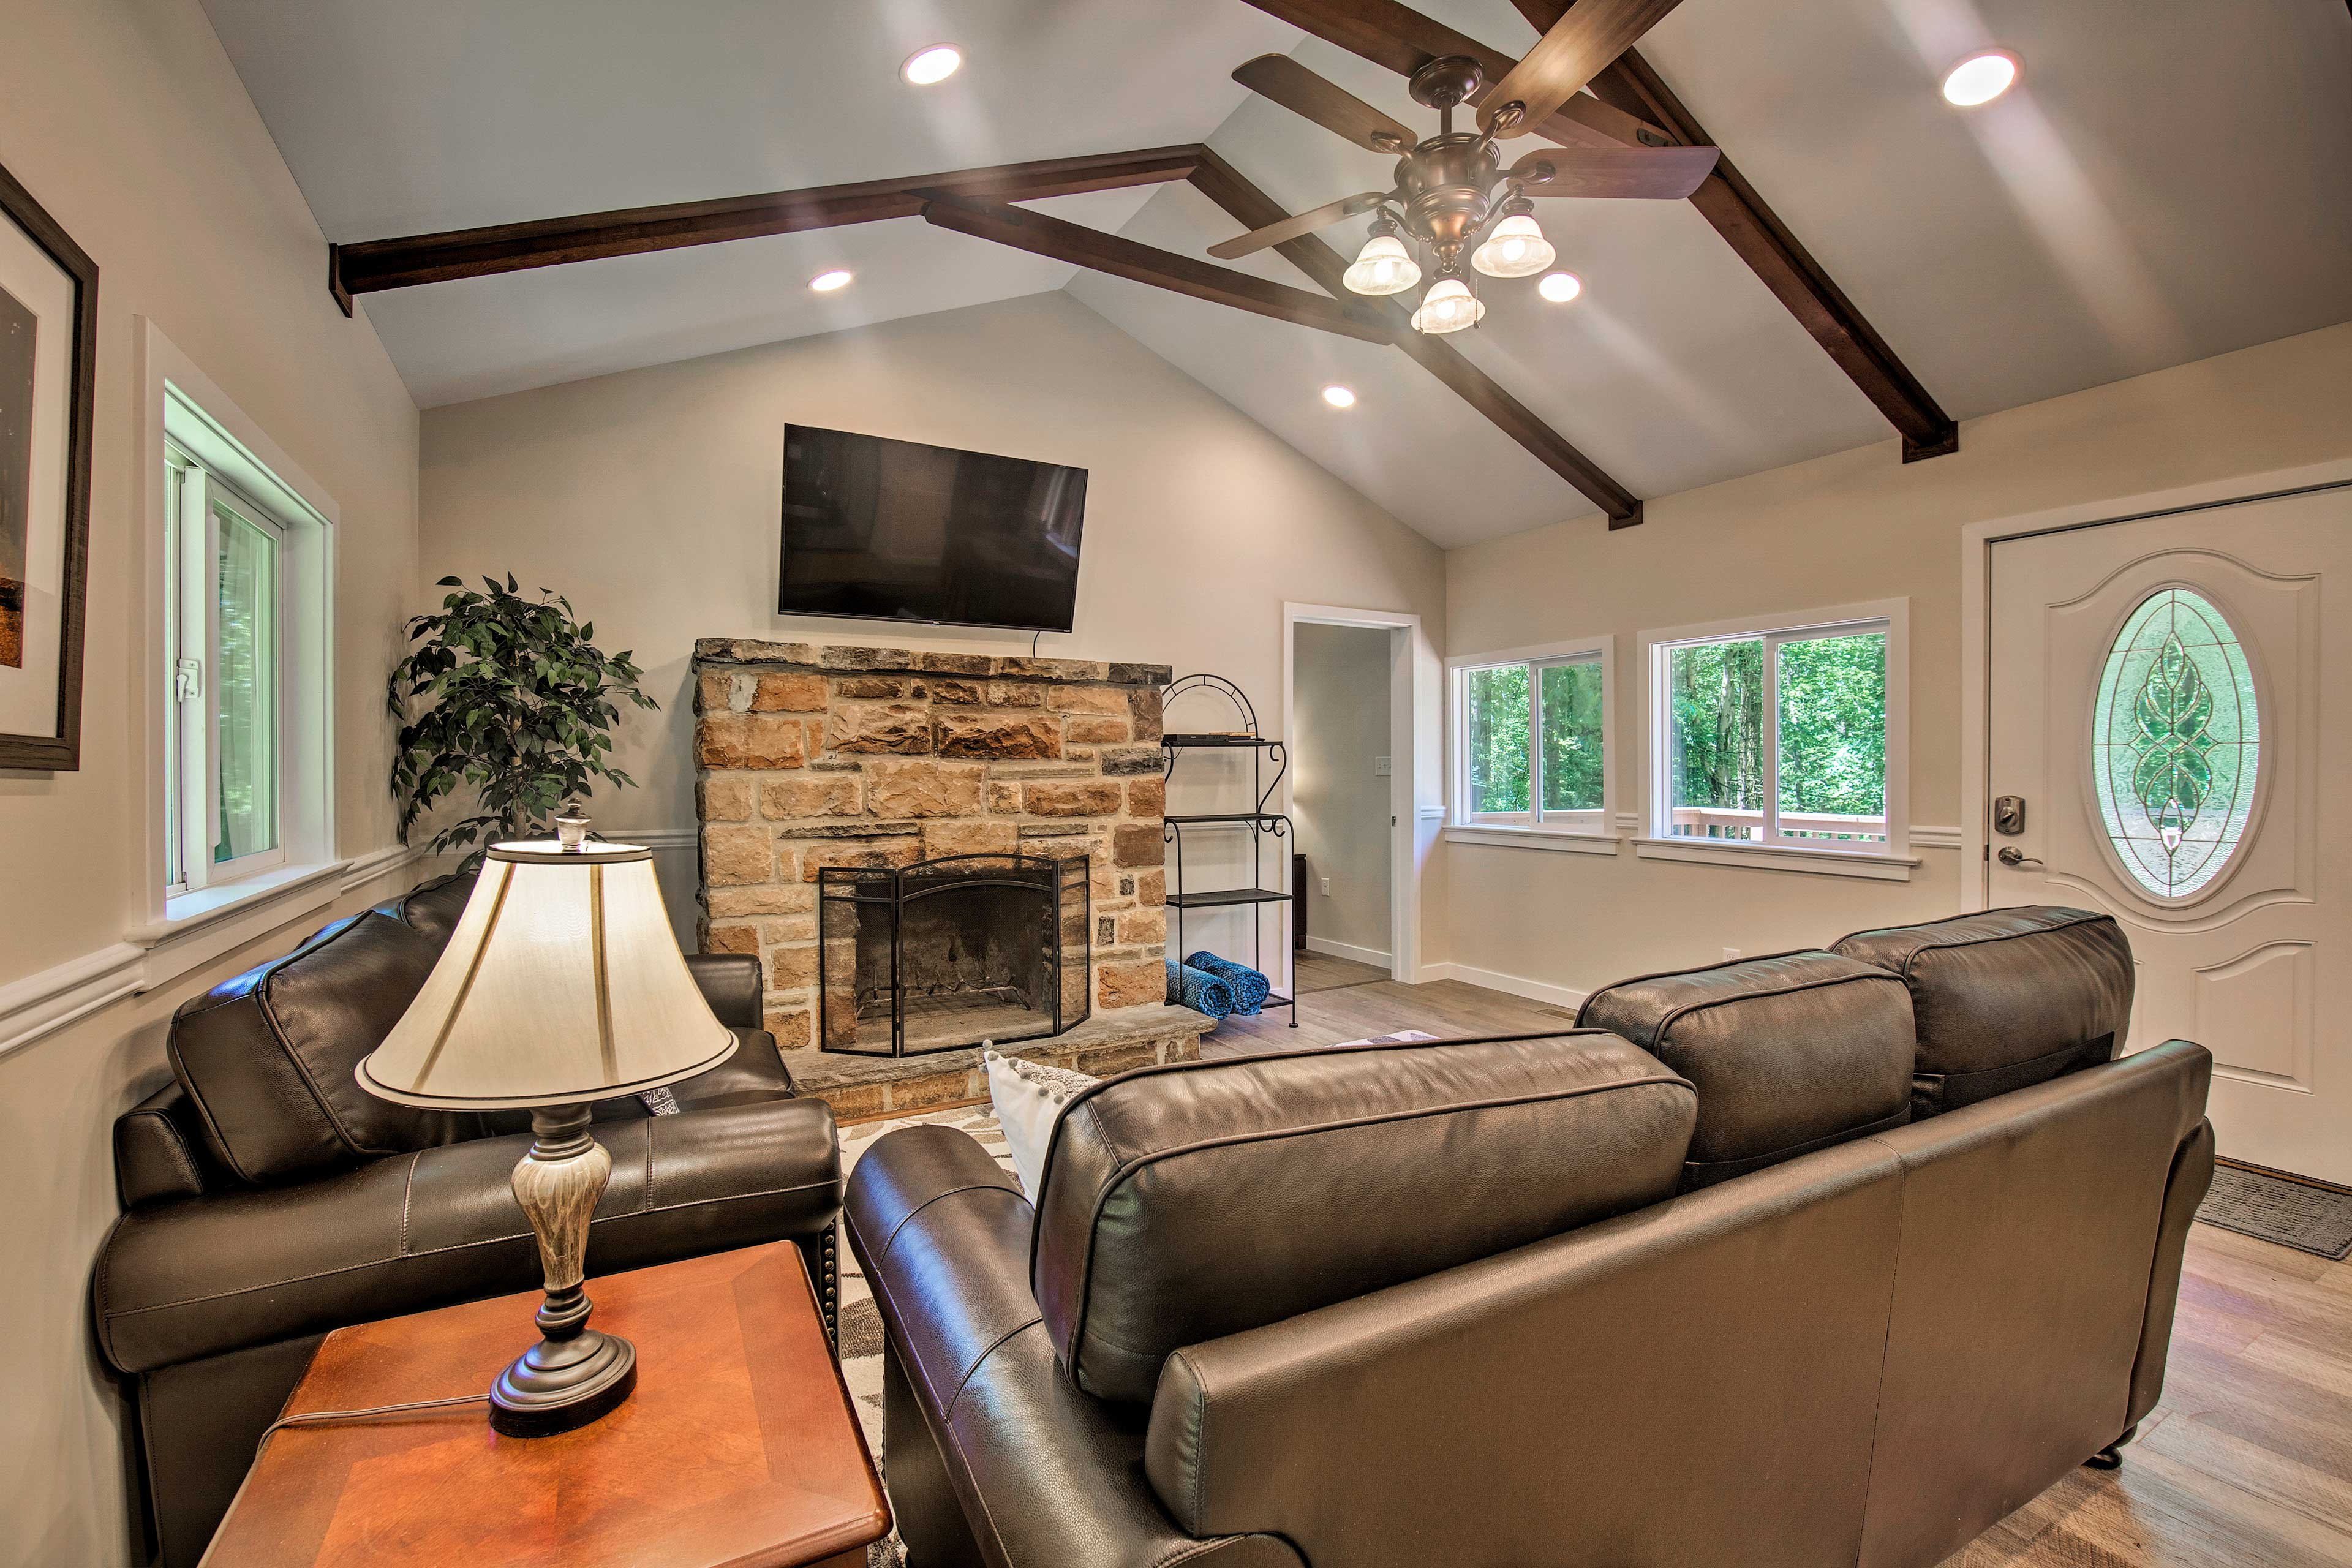 The living room boasts a wood-burning fireplace and flat-screen TV.